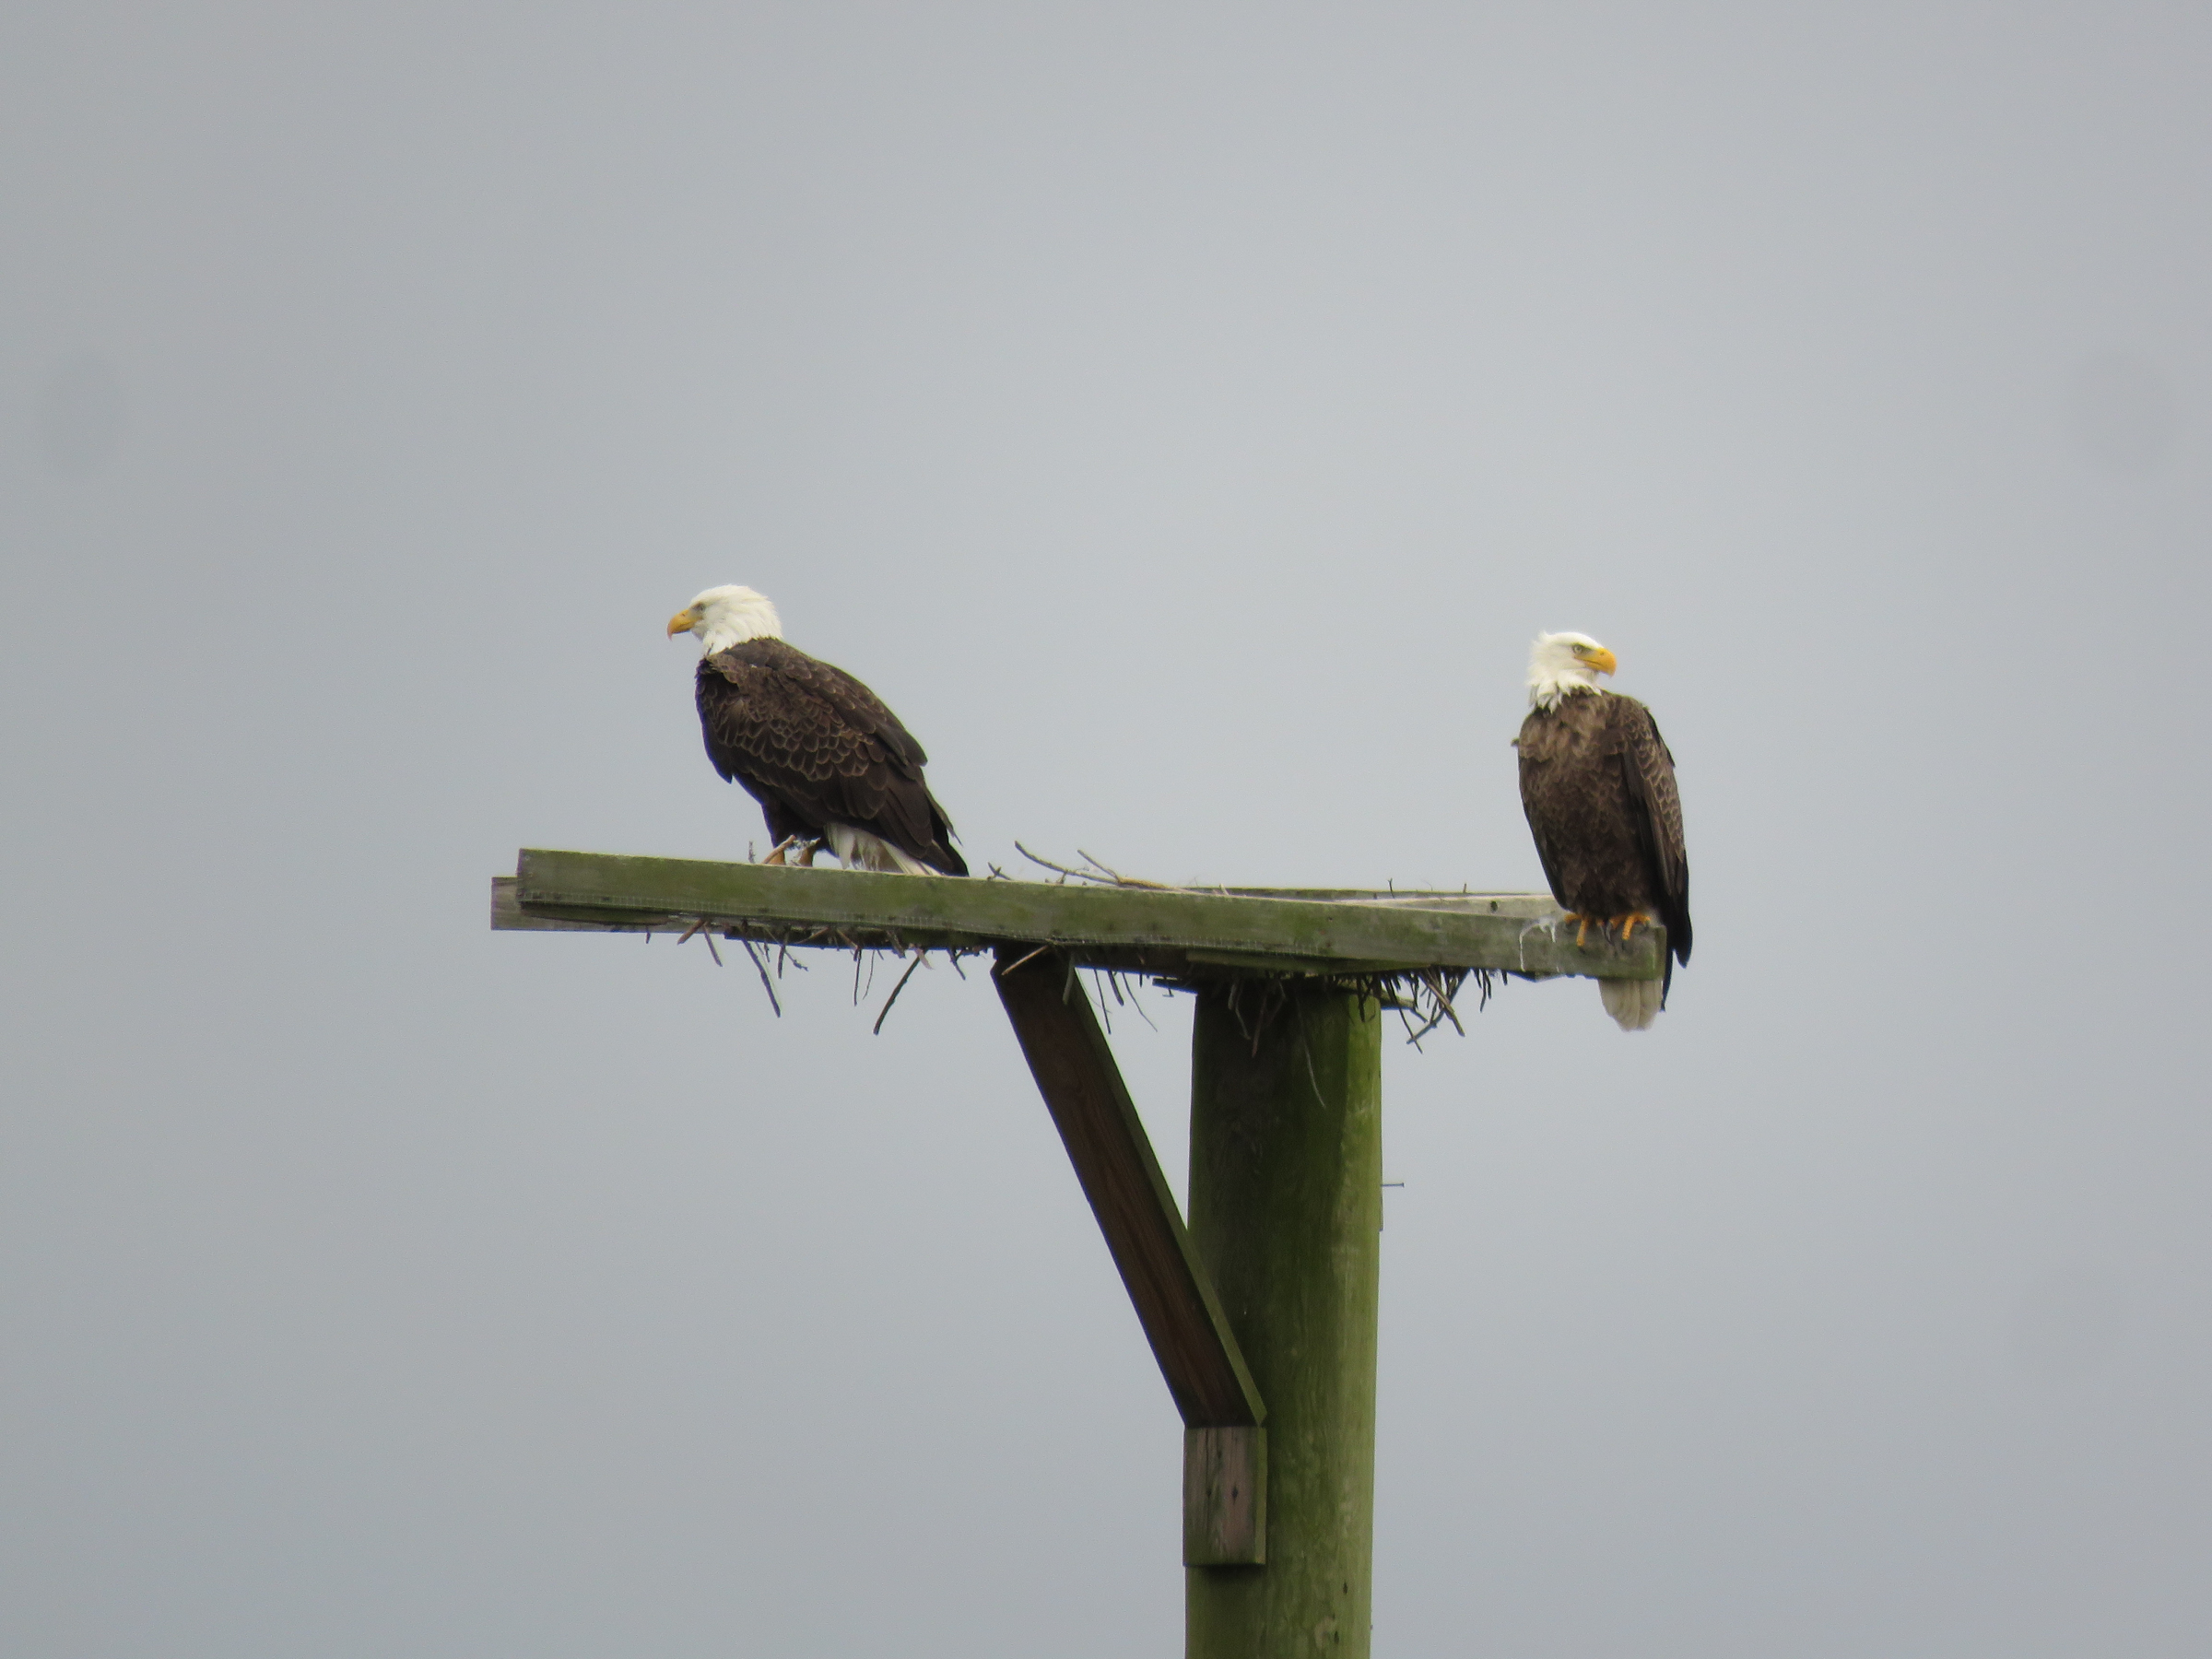 Eagles tag-team eating fish too big to fly with!